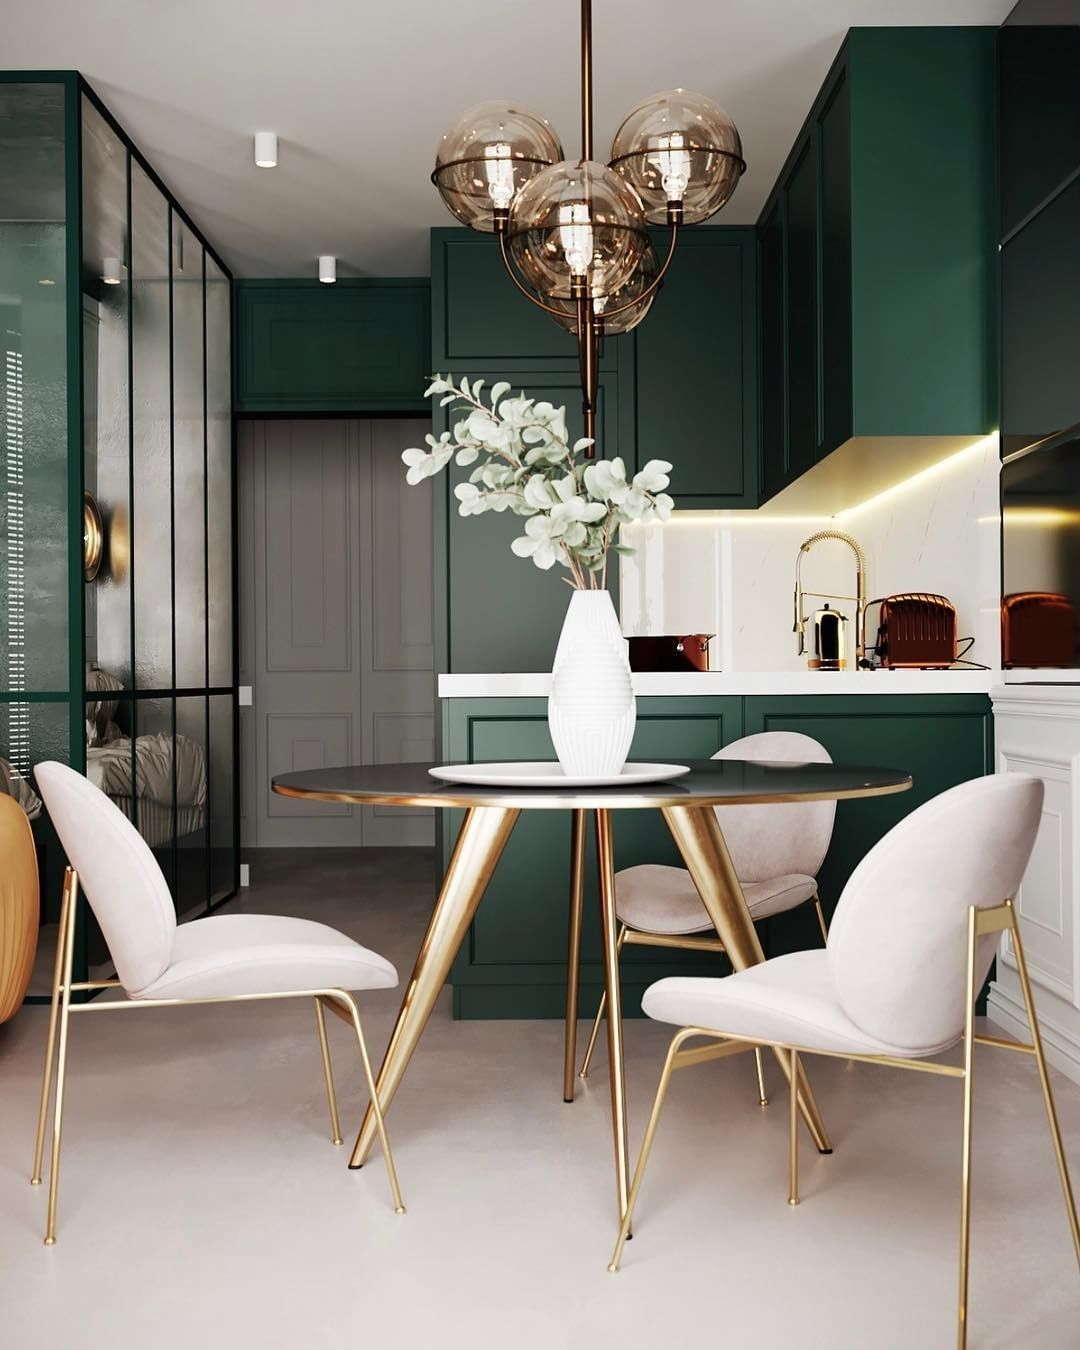 Interior123 On Instagram Dark Green Is A Color Of The Moment And This Kitchen And Dining Area Shows House Interior Trendy Living Rooms Luxury Homes Interior #small #kitchen #and #living #room #designs #combine